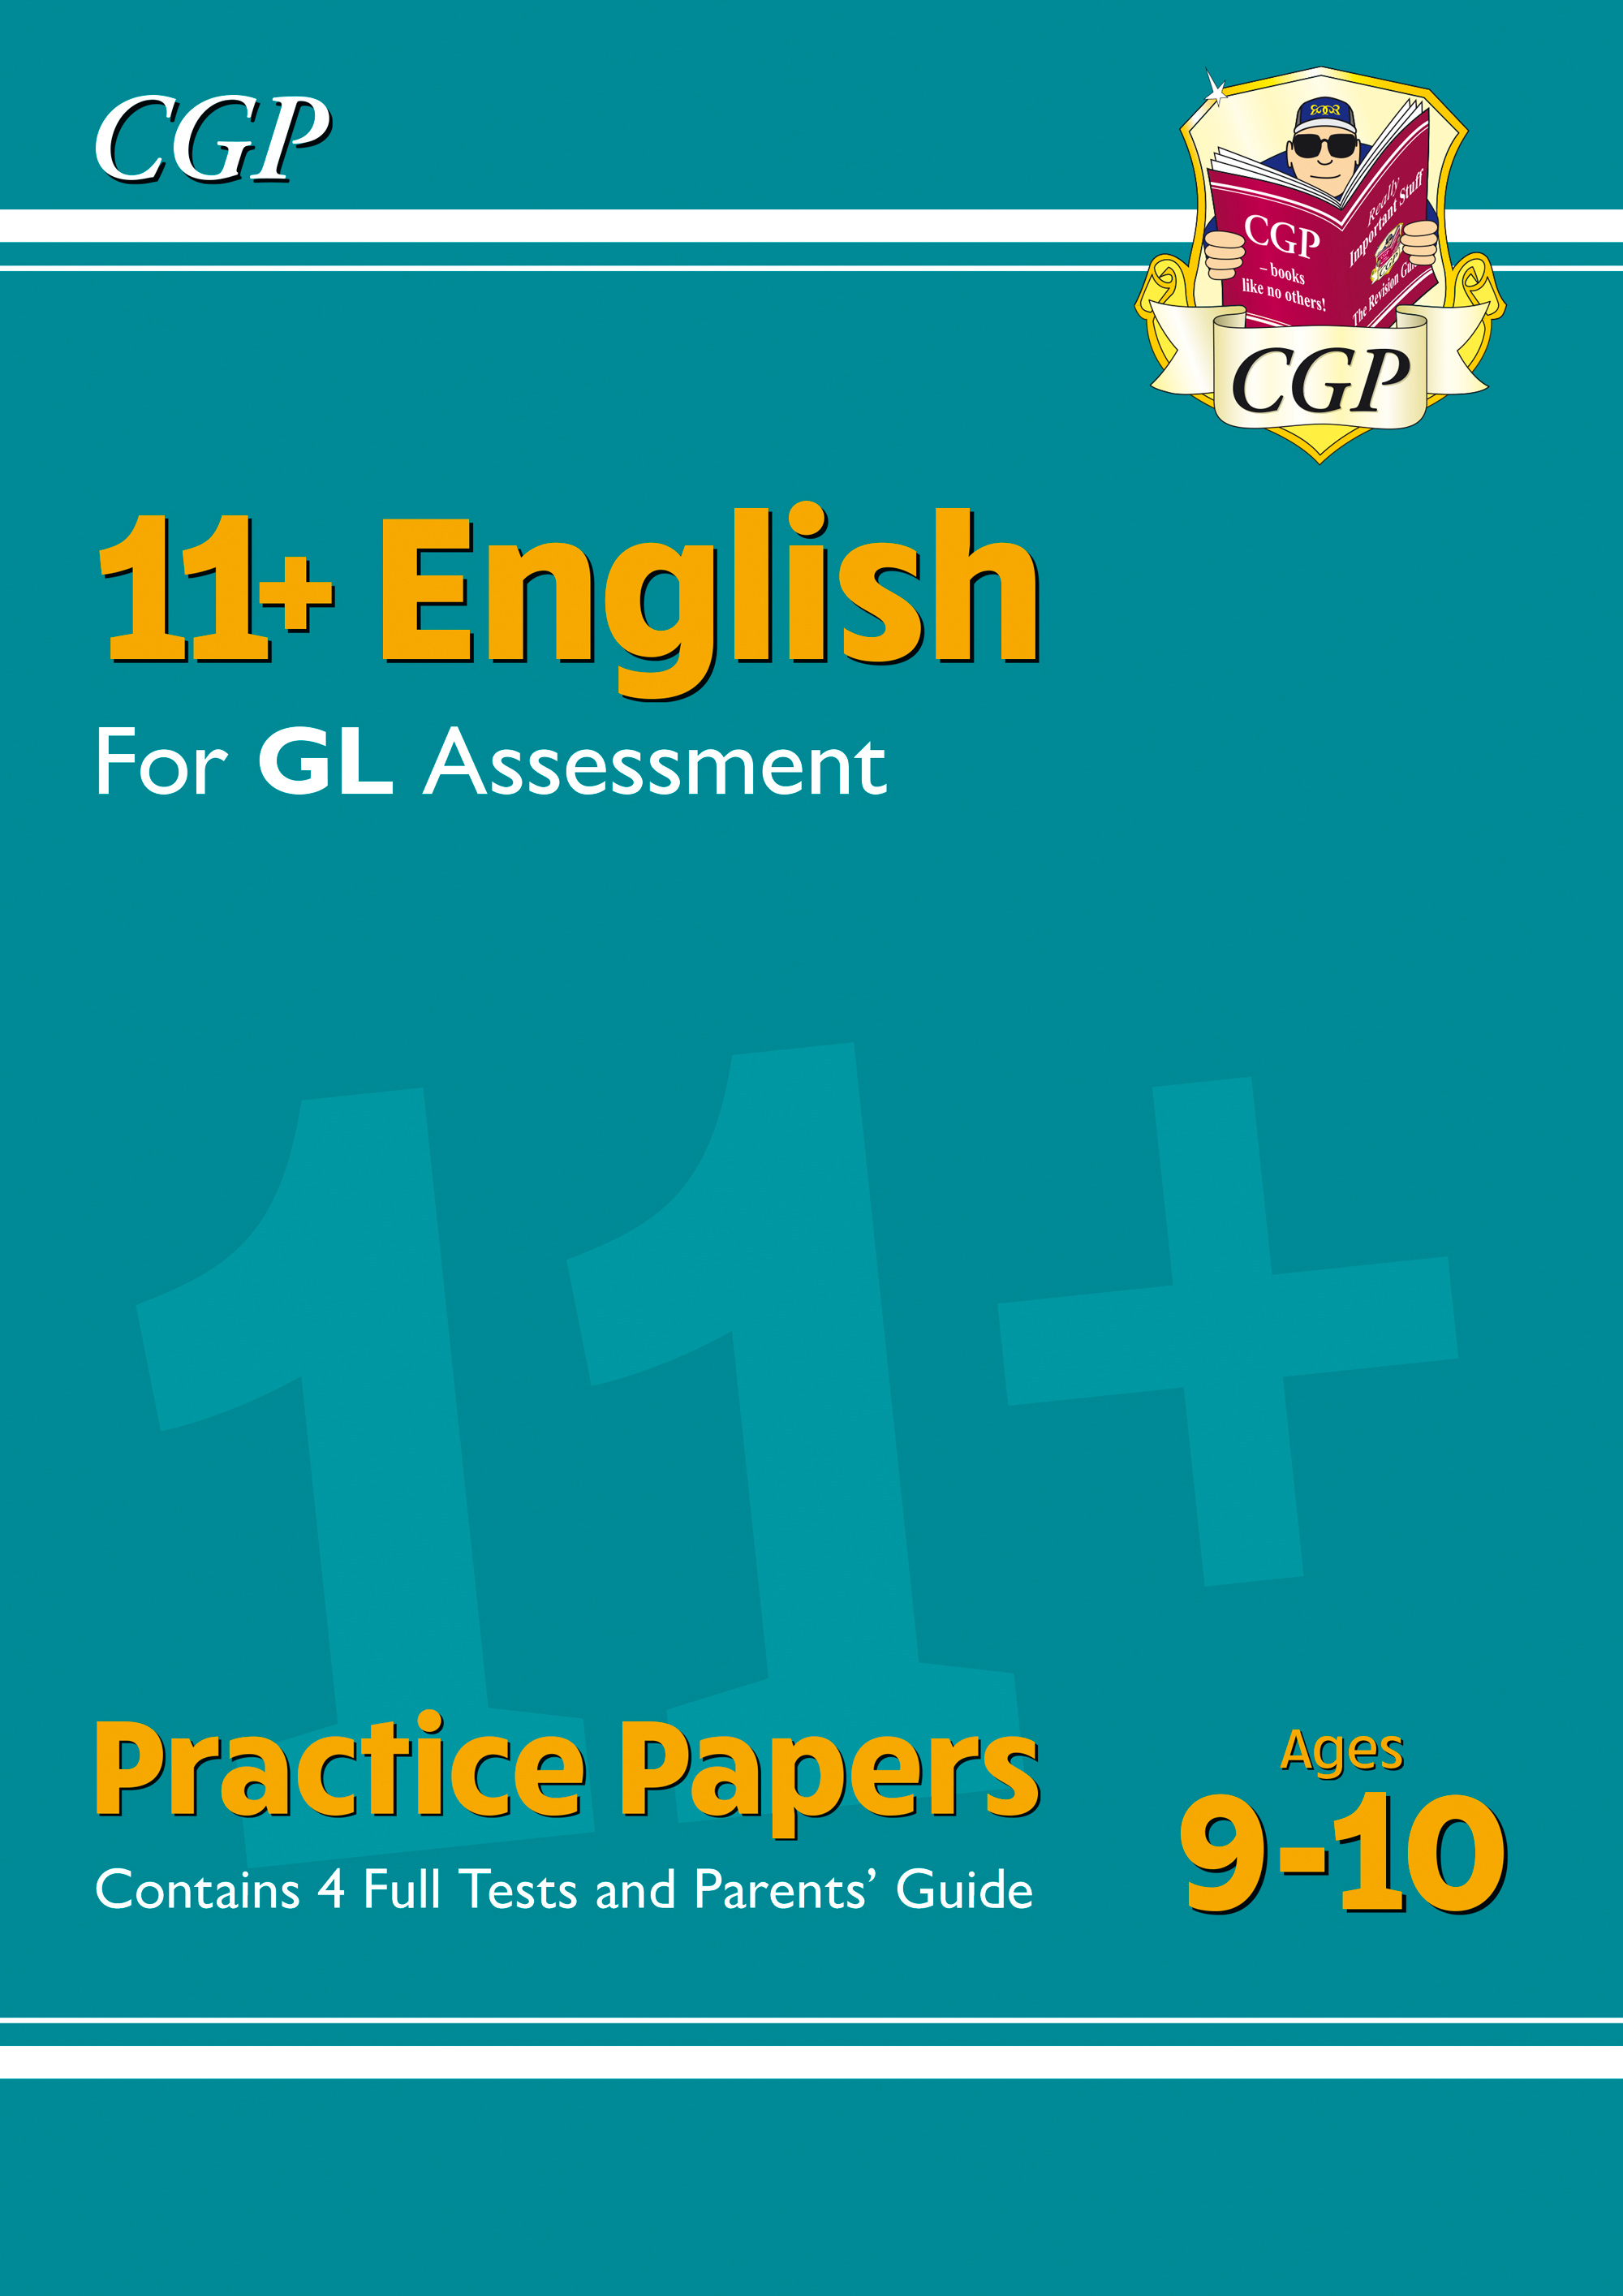 EH5PE1DK - New 11+ GL English Practice Papers - Ages 9-10 (with Parents' Guide)